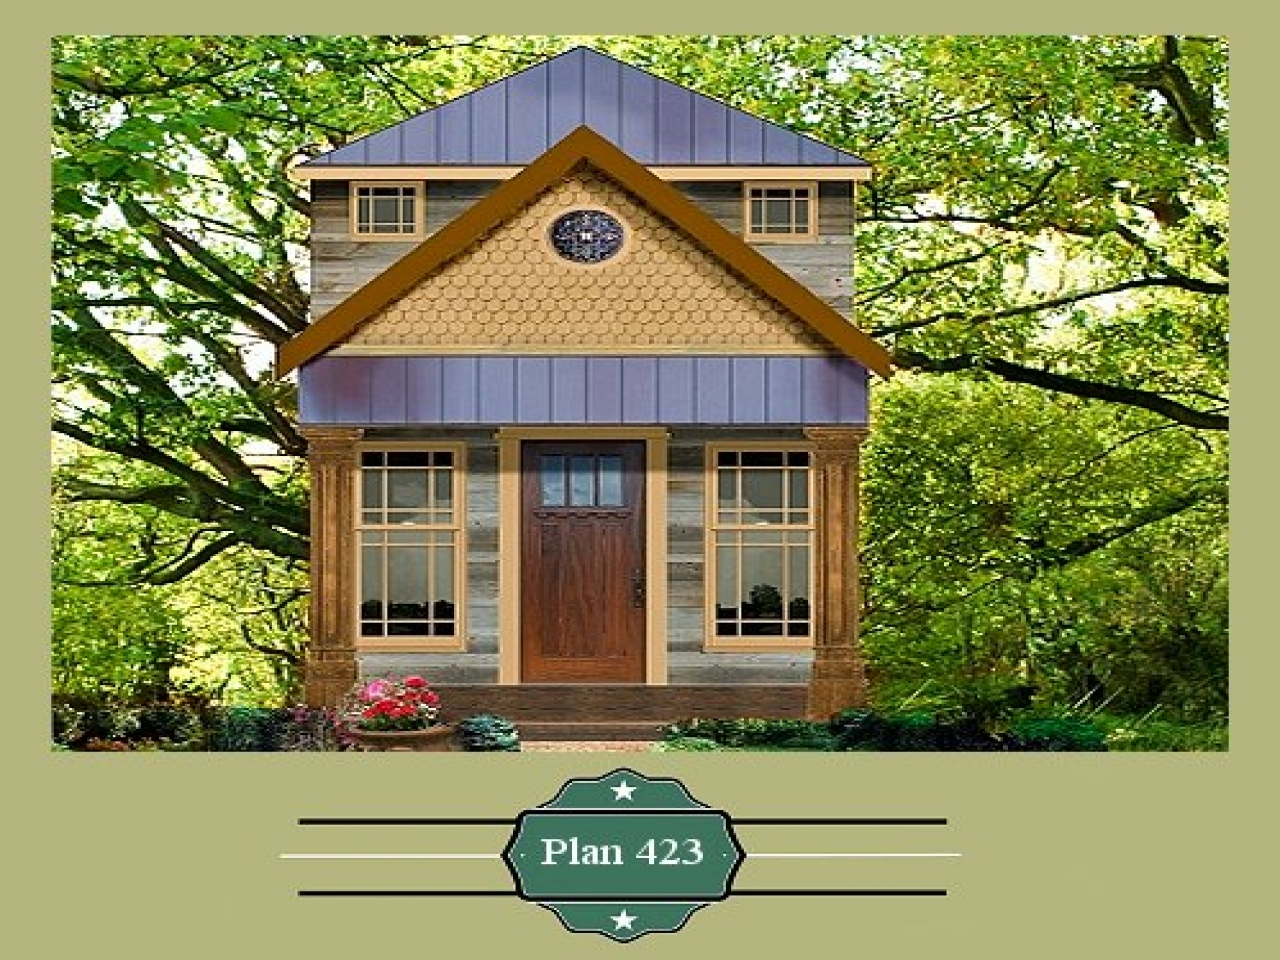 Texas tiny house plans single story house plans texas for Single story tiny house plans